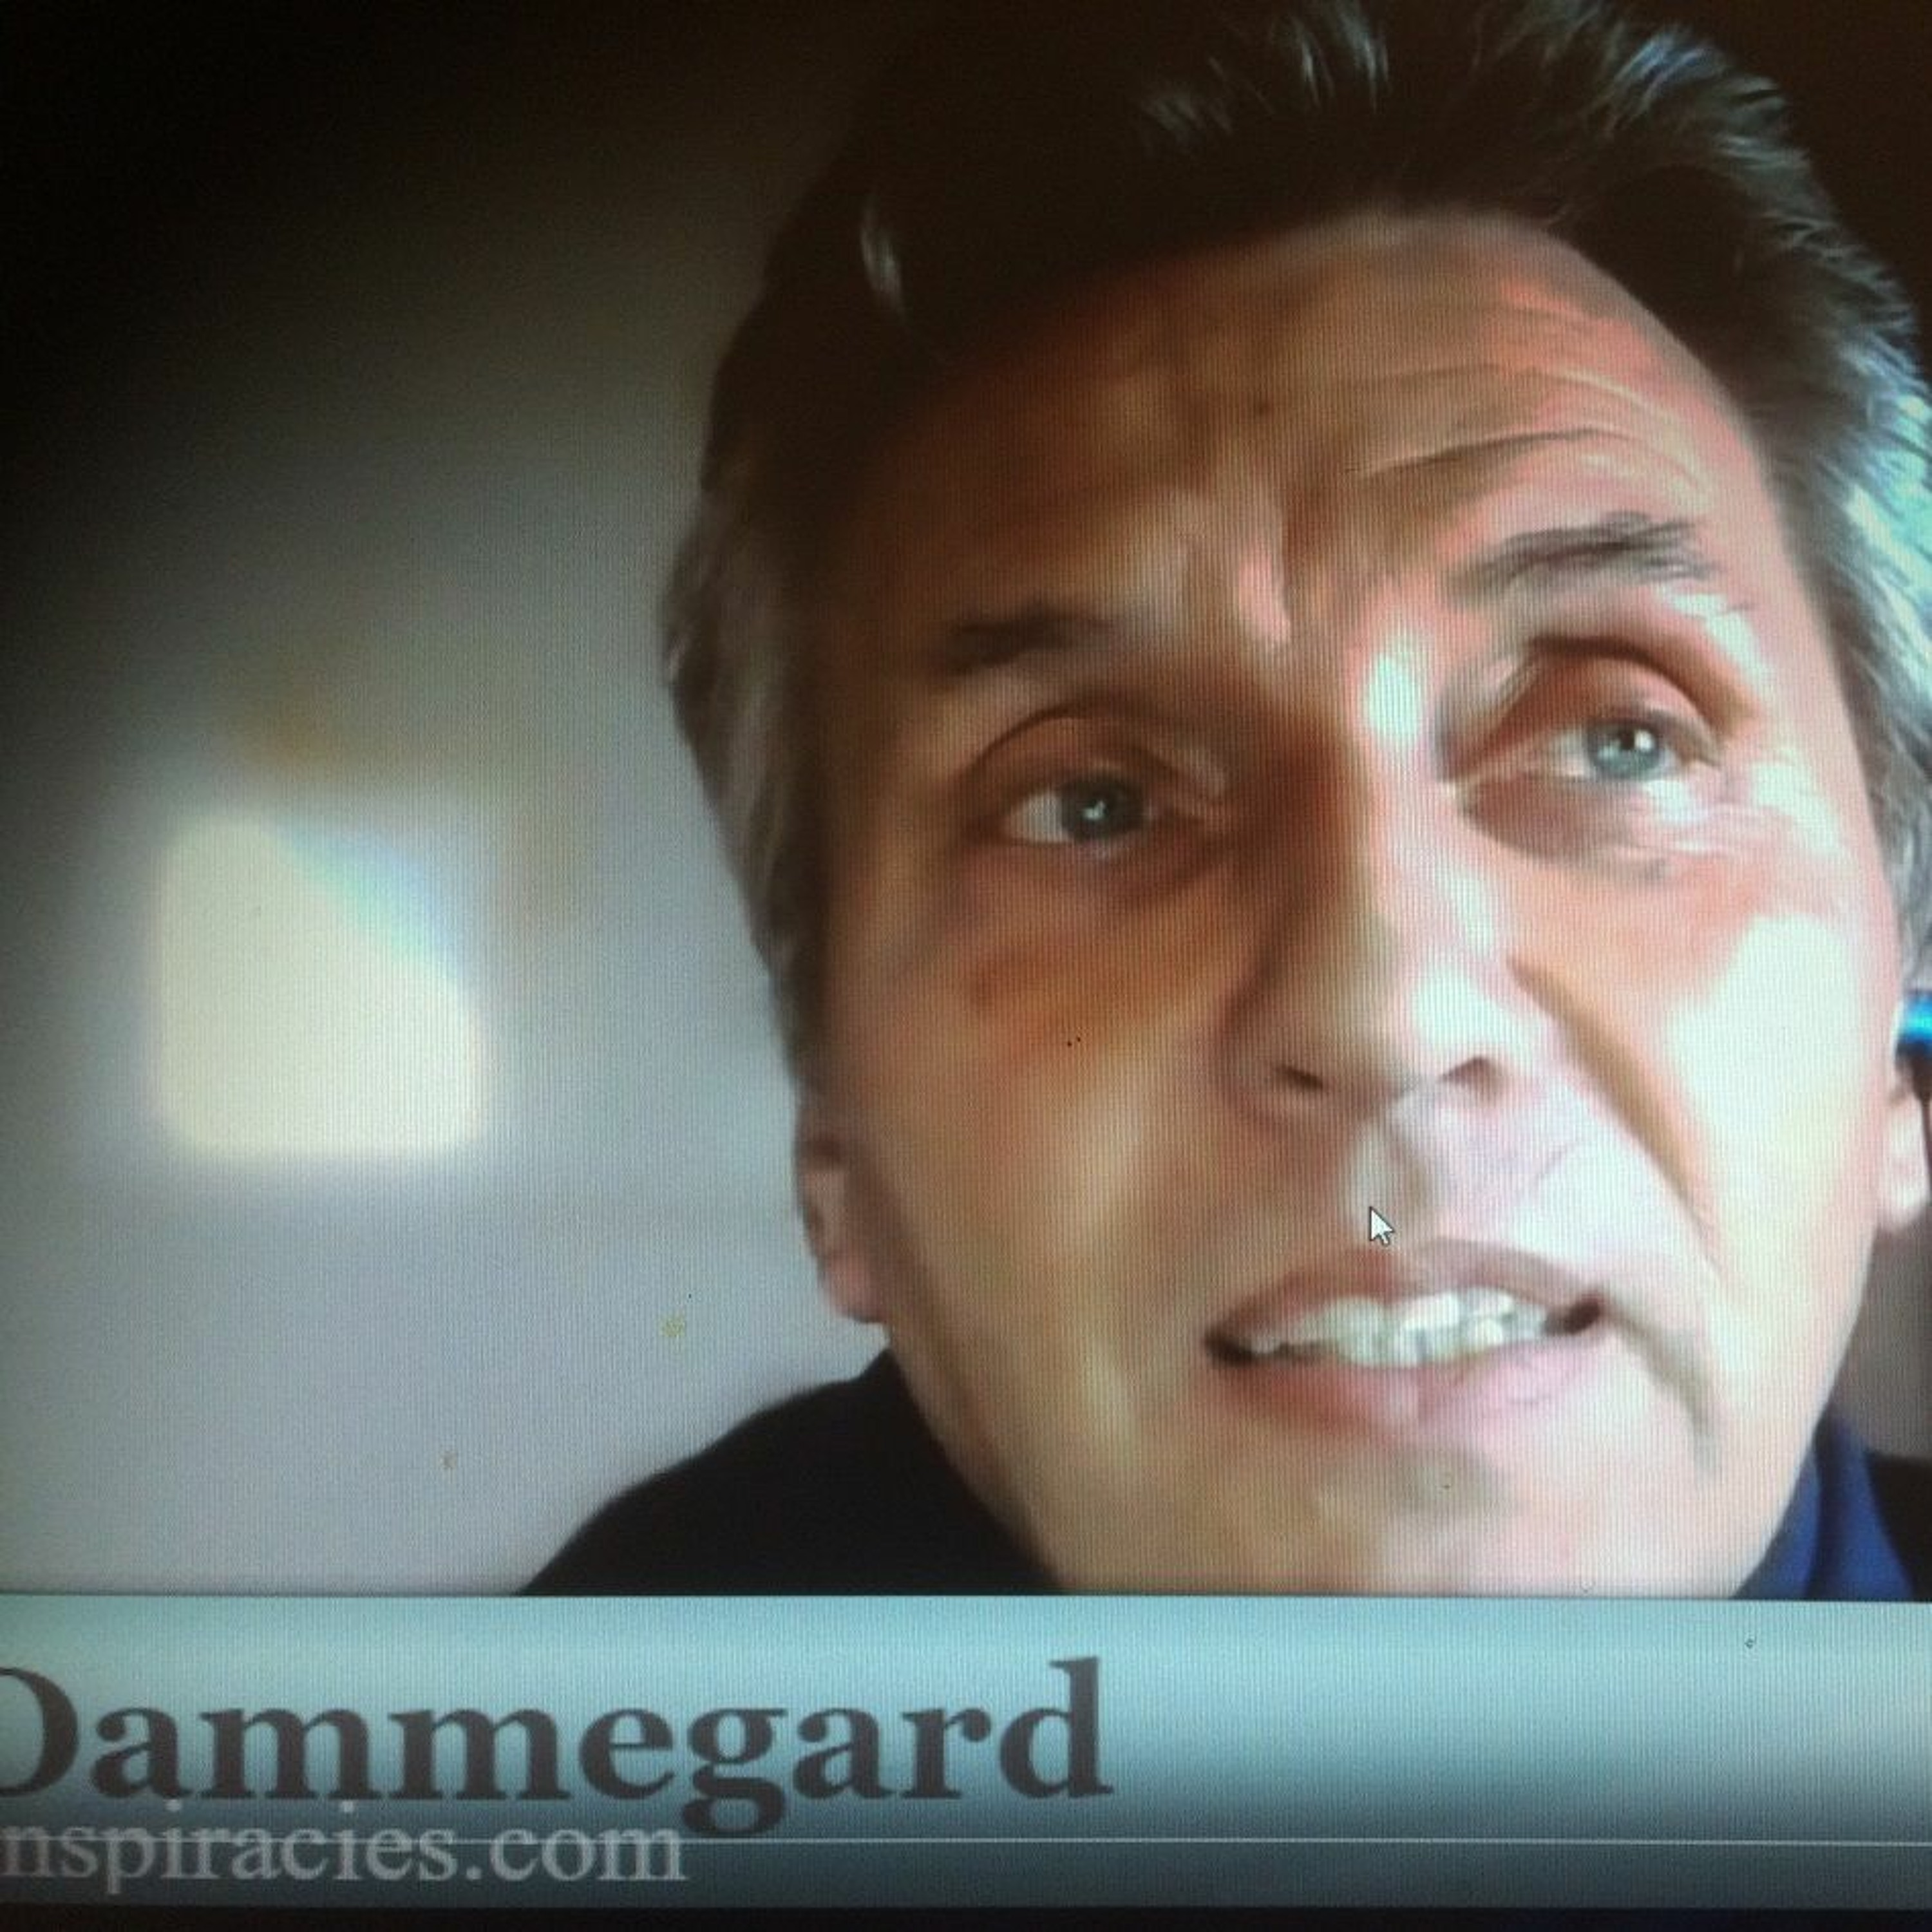 Ole Dammegard Interview Global Awakening You Are The Change Overcoming Fear